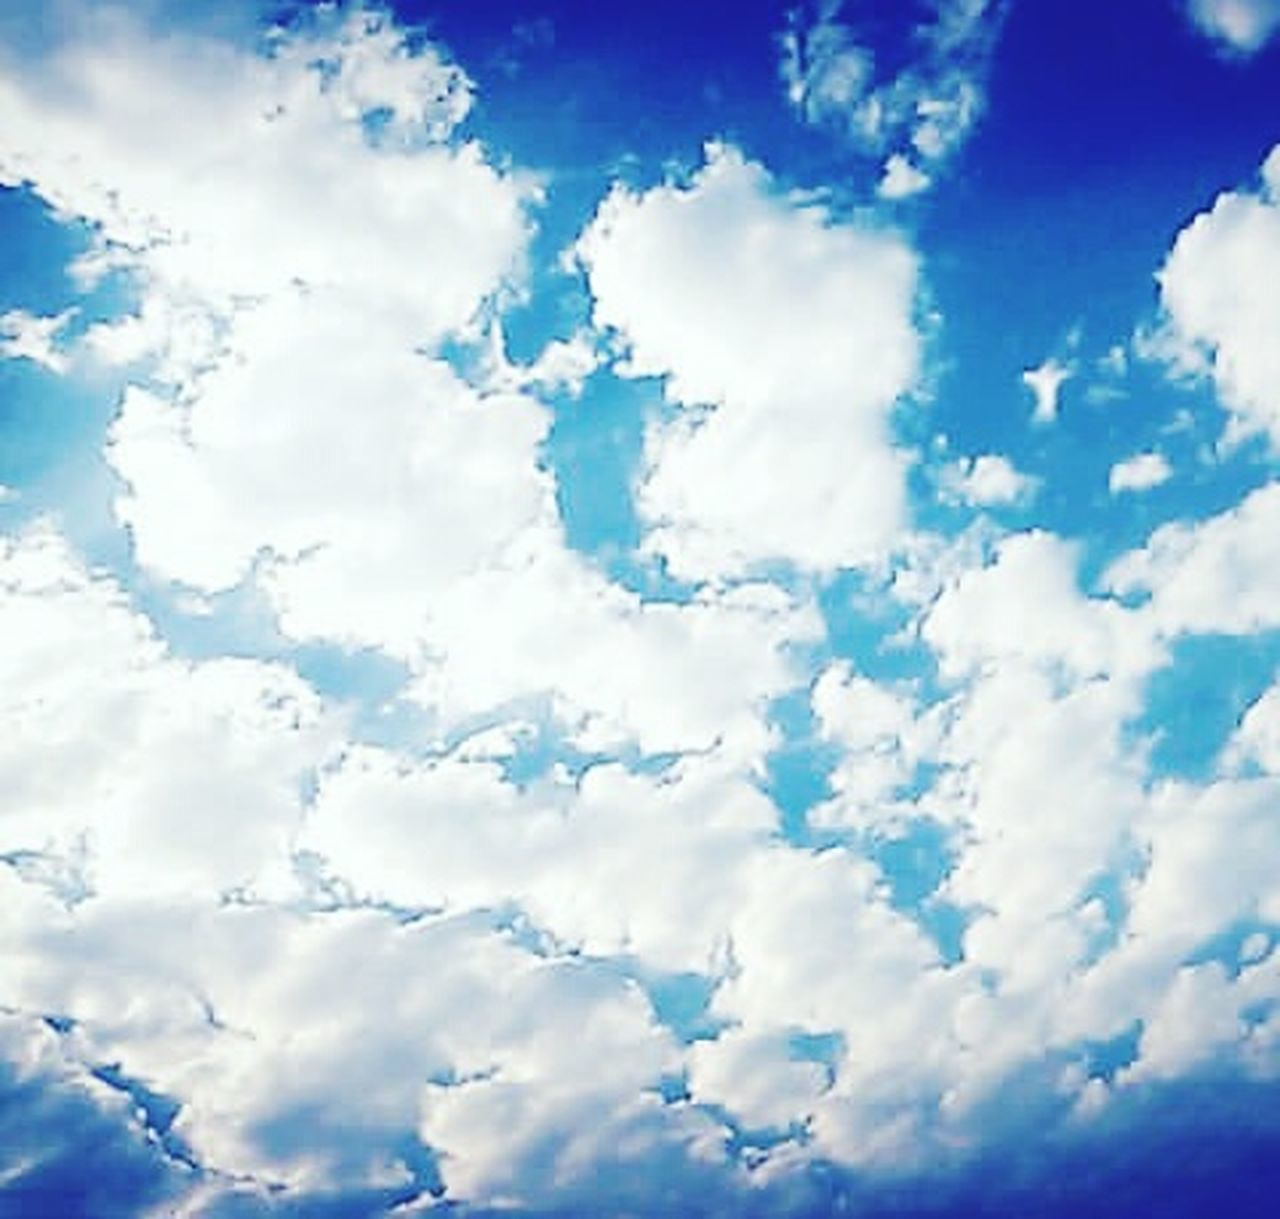 cloud - sky, blue, backgrounds, cloudscape, sky, weather, dramatic sky, summer, nature, white color, vibrant color, scenics, textured effect, textured, beauty in nature, brightly lit, sunlight, abstract, sky only, multi colored, no people, outdoors, day